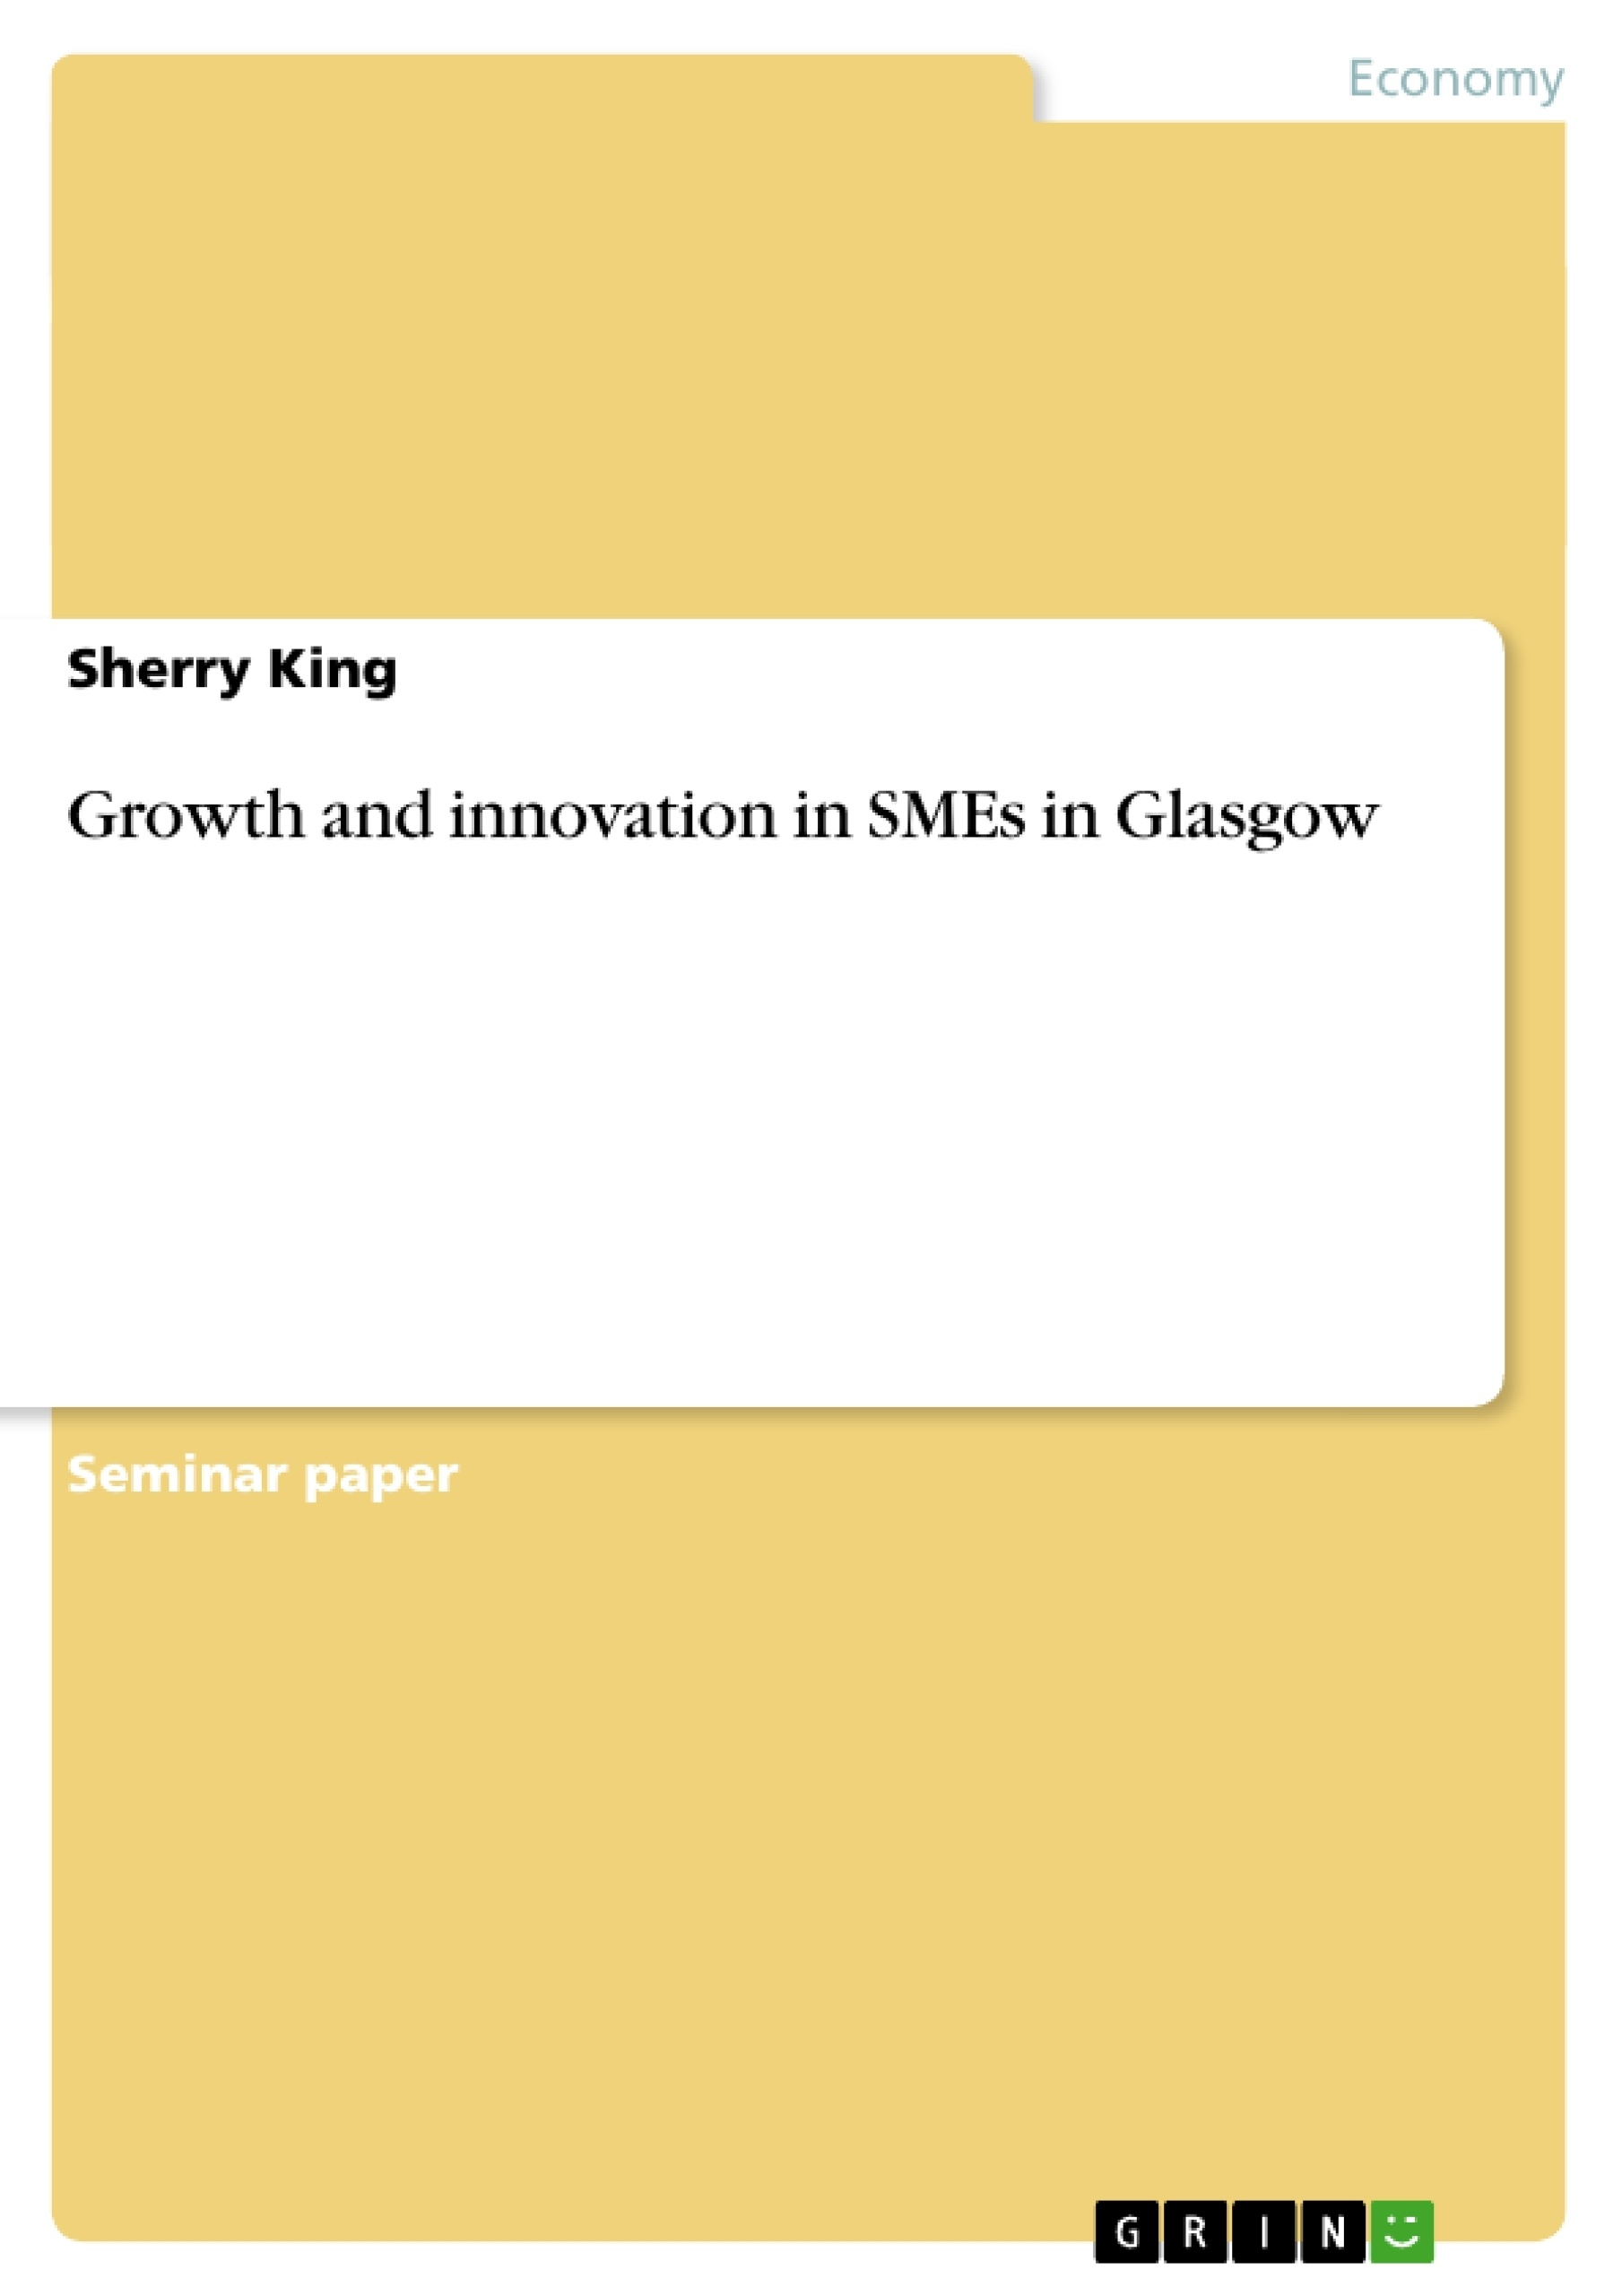 Title: Growth and innovation in SMEs in Glasgow